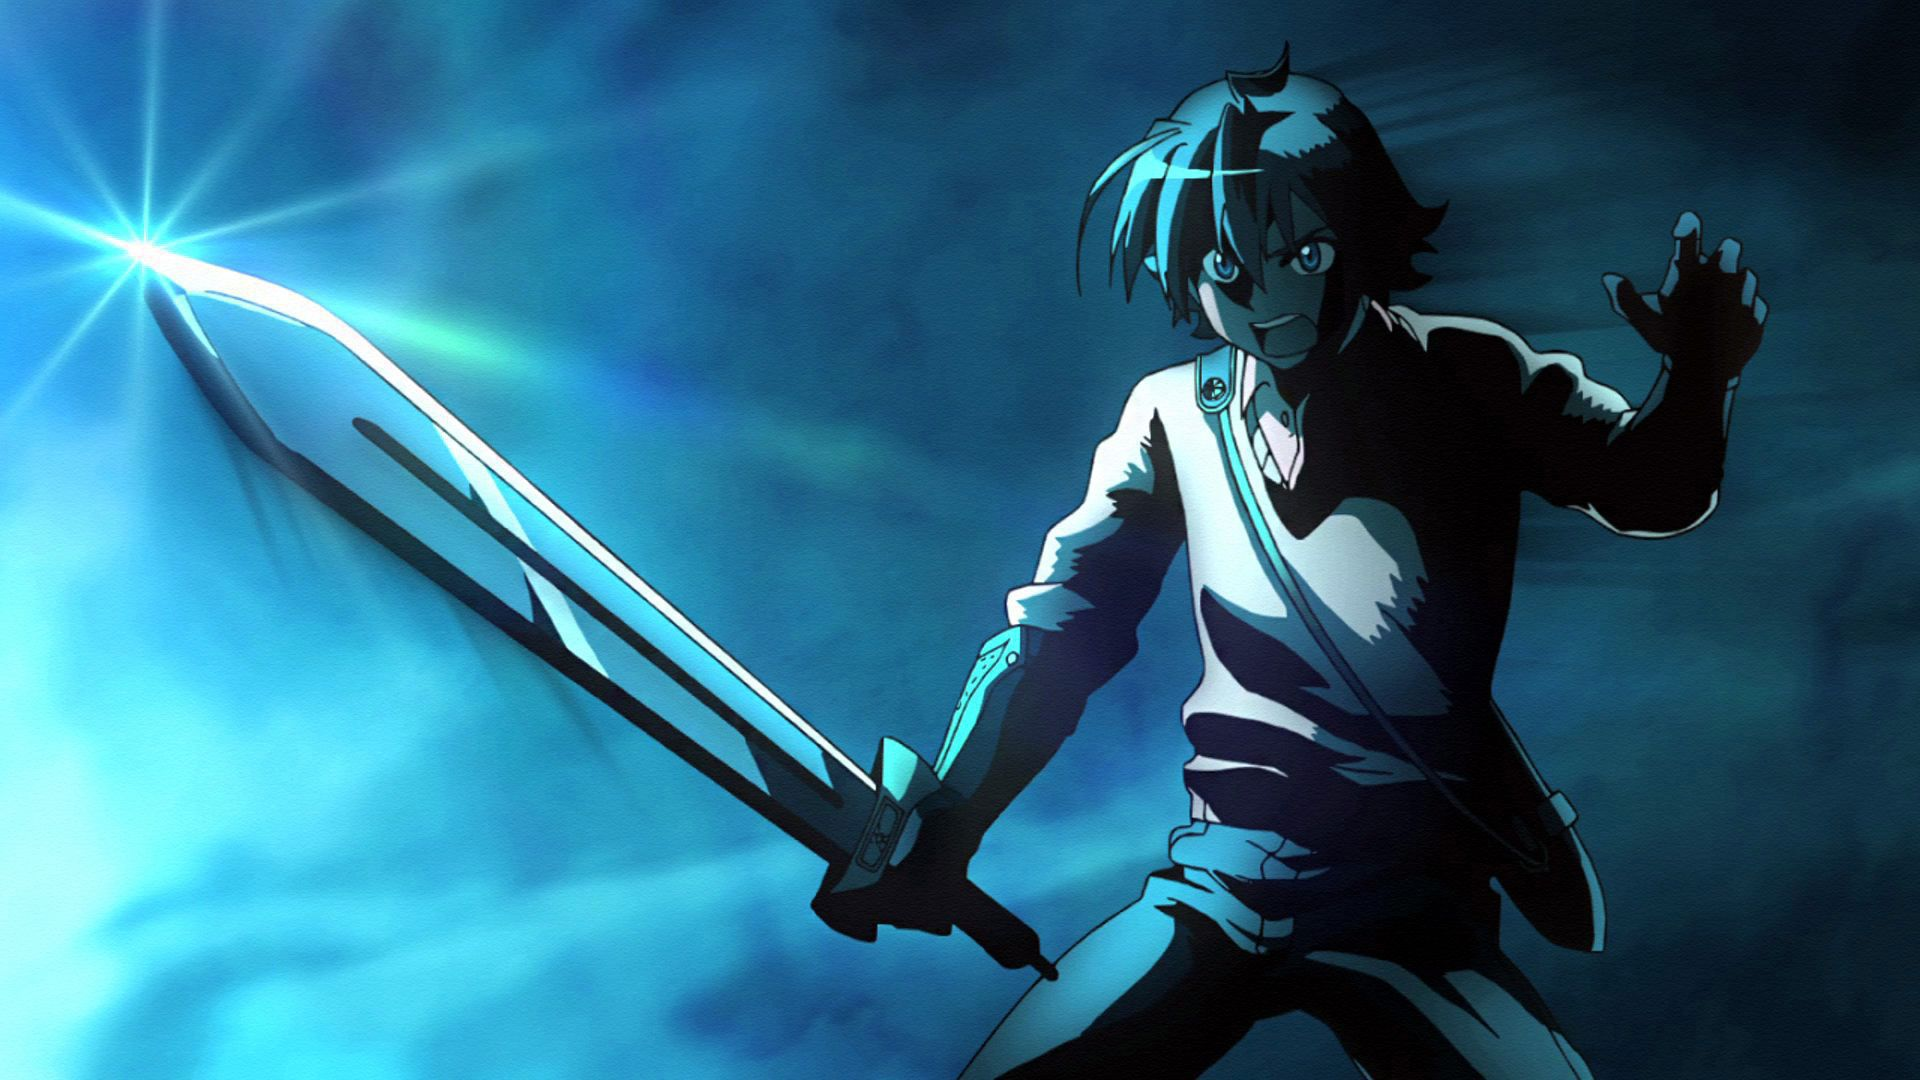 Akame Ga Kill Wallpaper: Akame Ga Kill! Wallpapers Backgrounds